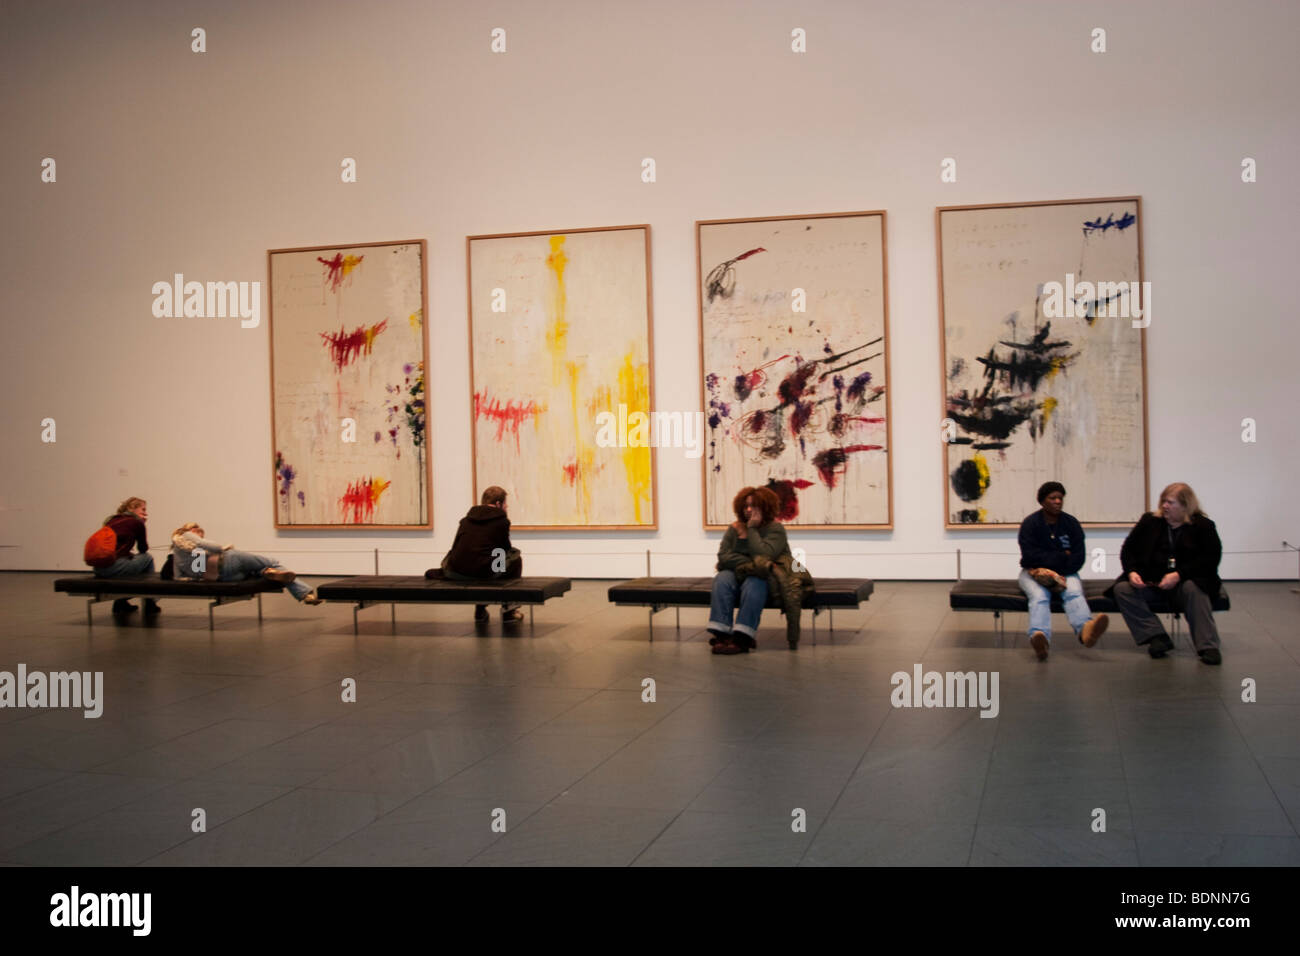 New york usa 11th nov 2015 telephone bidders stand in front of the - Cy Twombly Paintings At The Museum Of Modern Art Or Moma In New York Usa